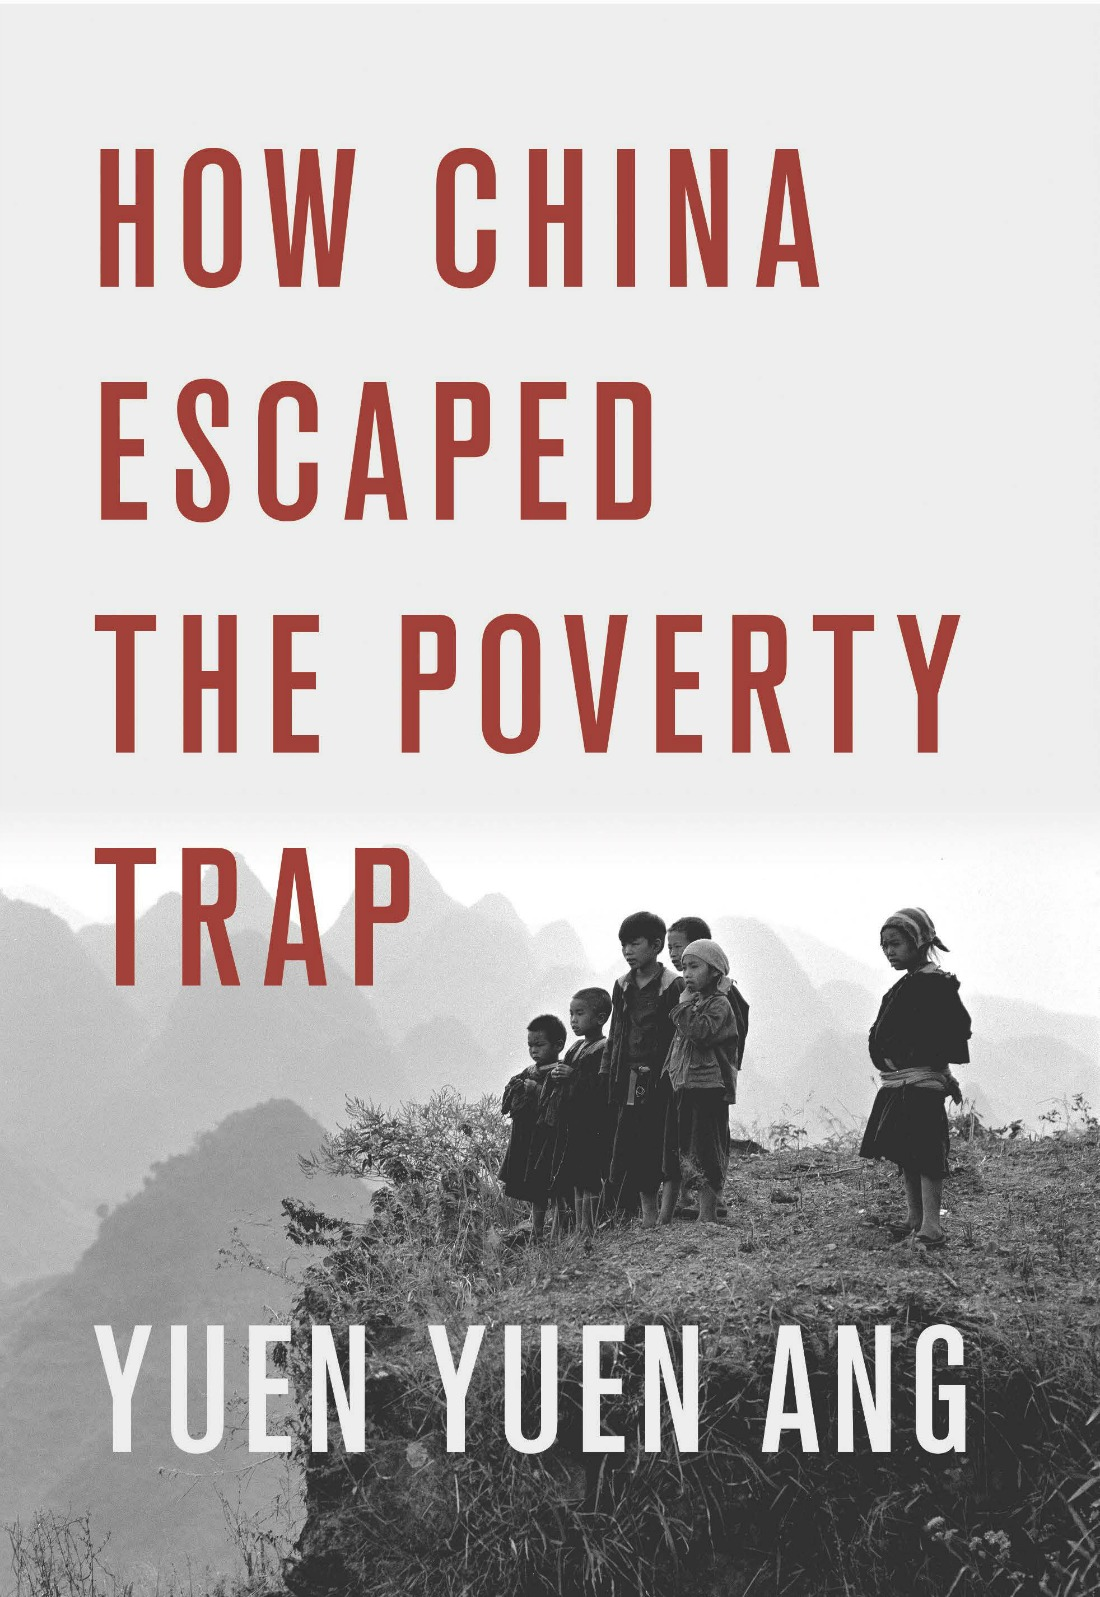 Portada de 'How China escaped the poverty trap'